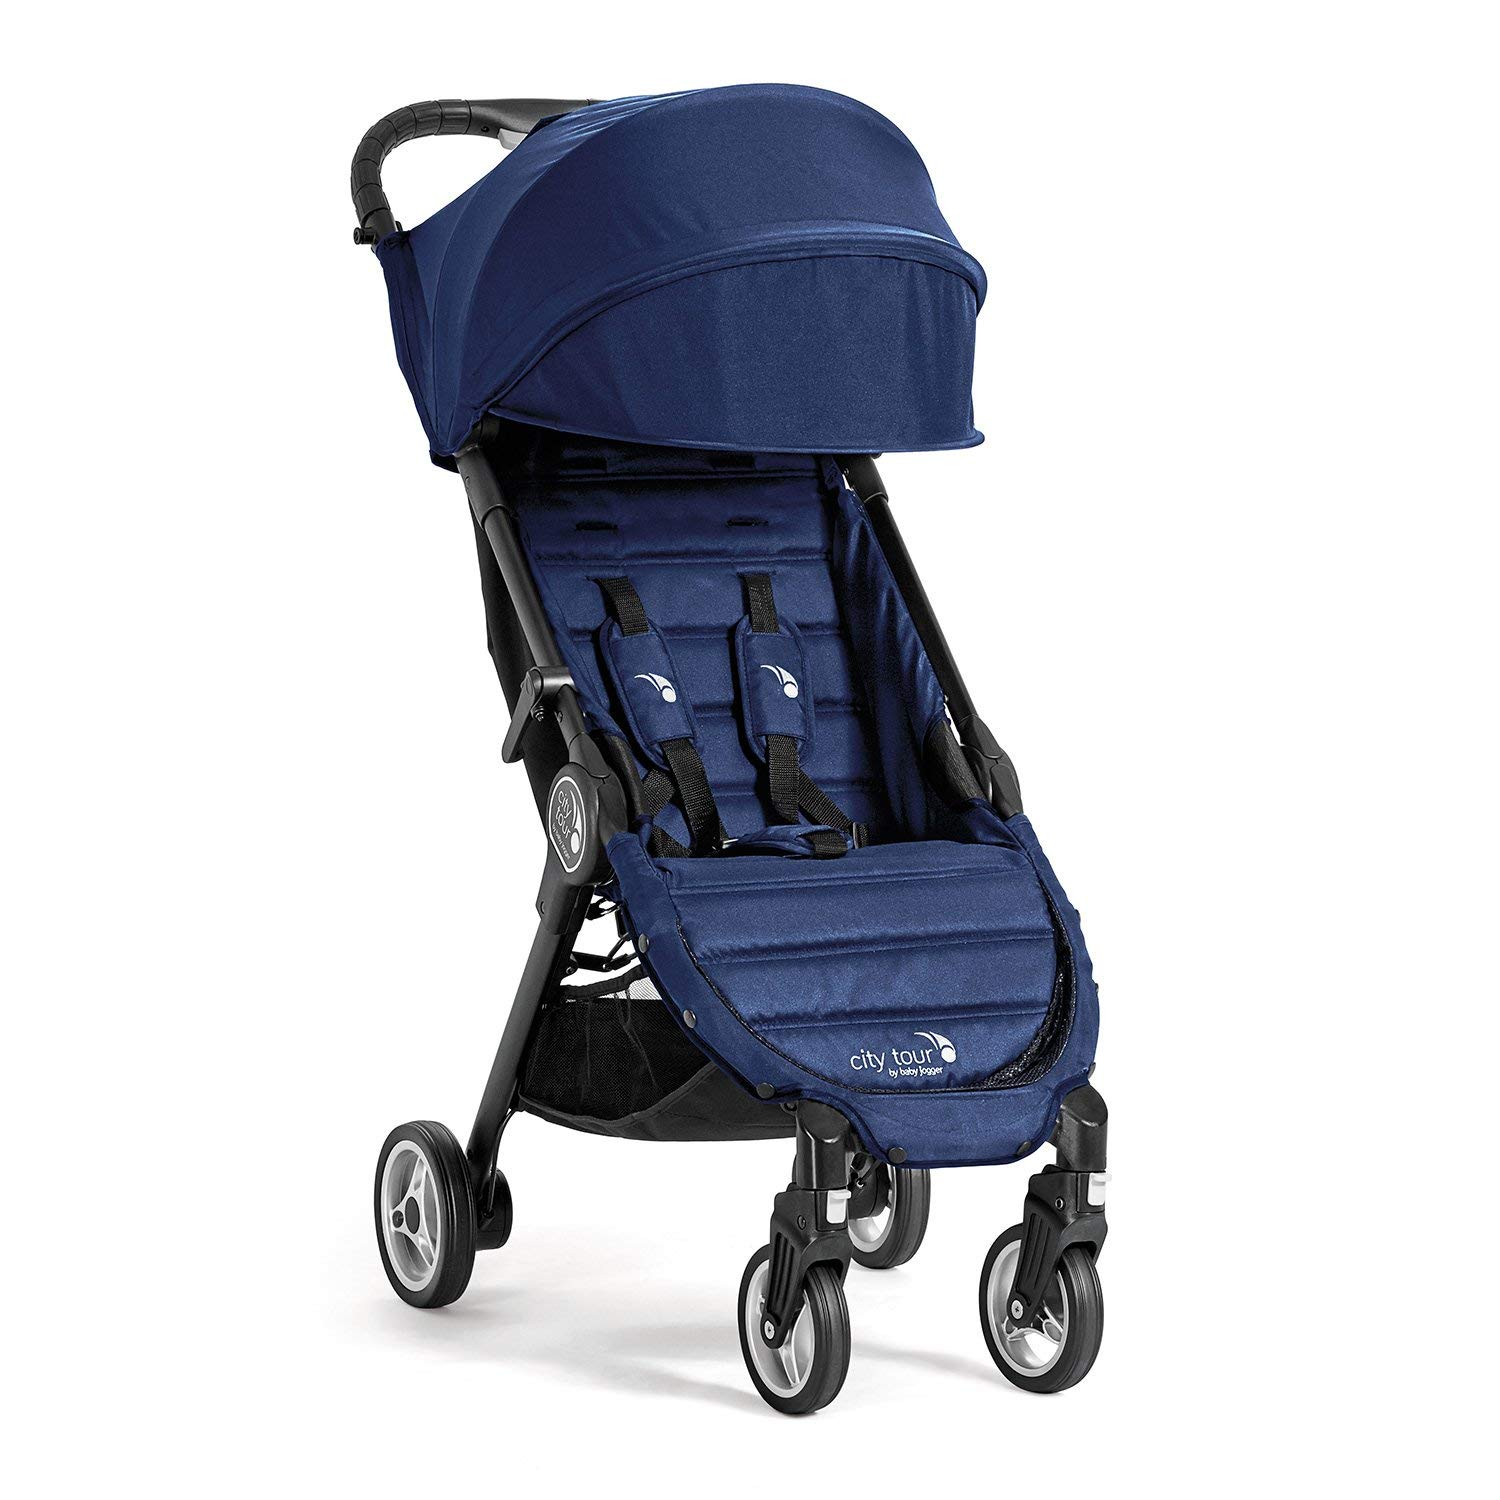 Strollers, Car Seats & Carriers